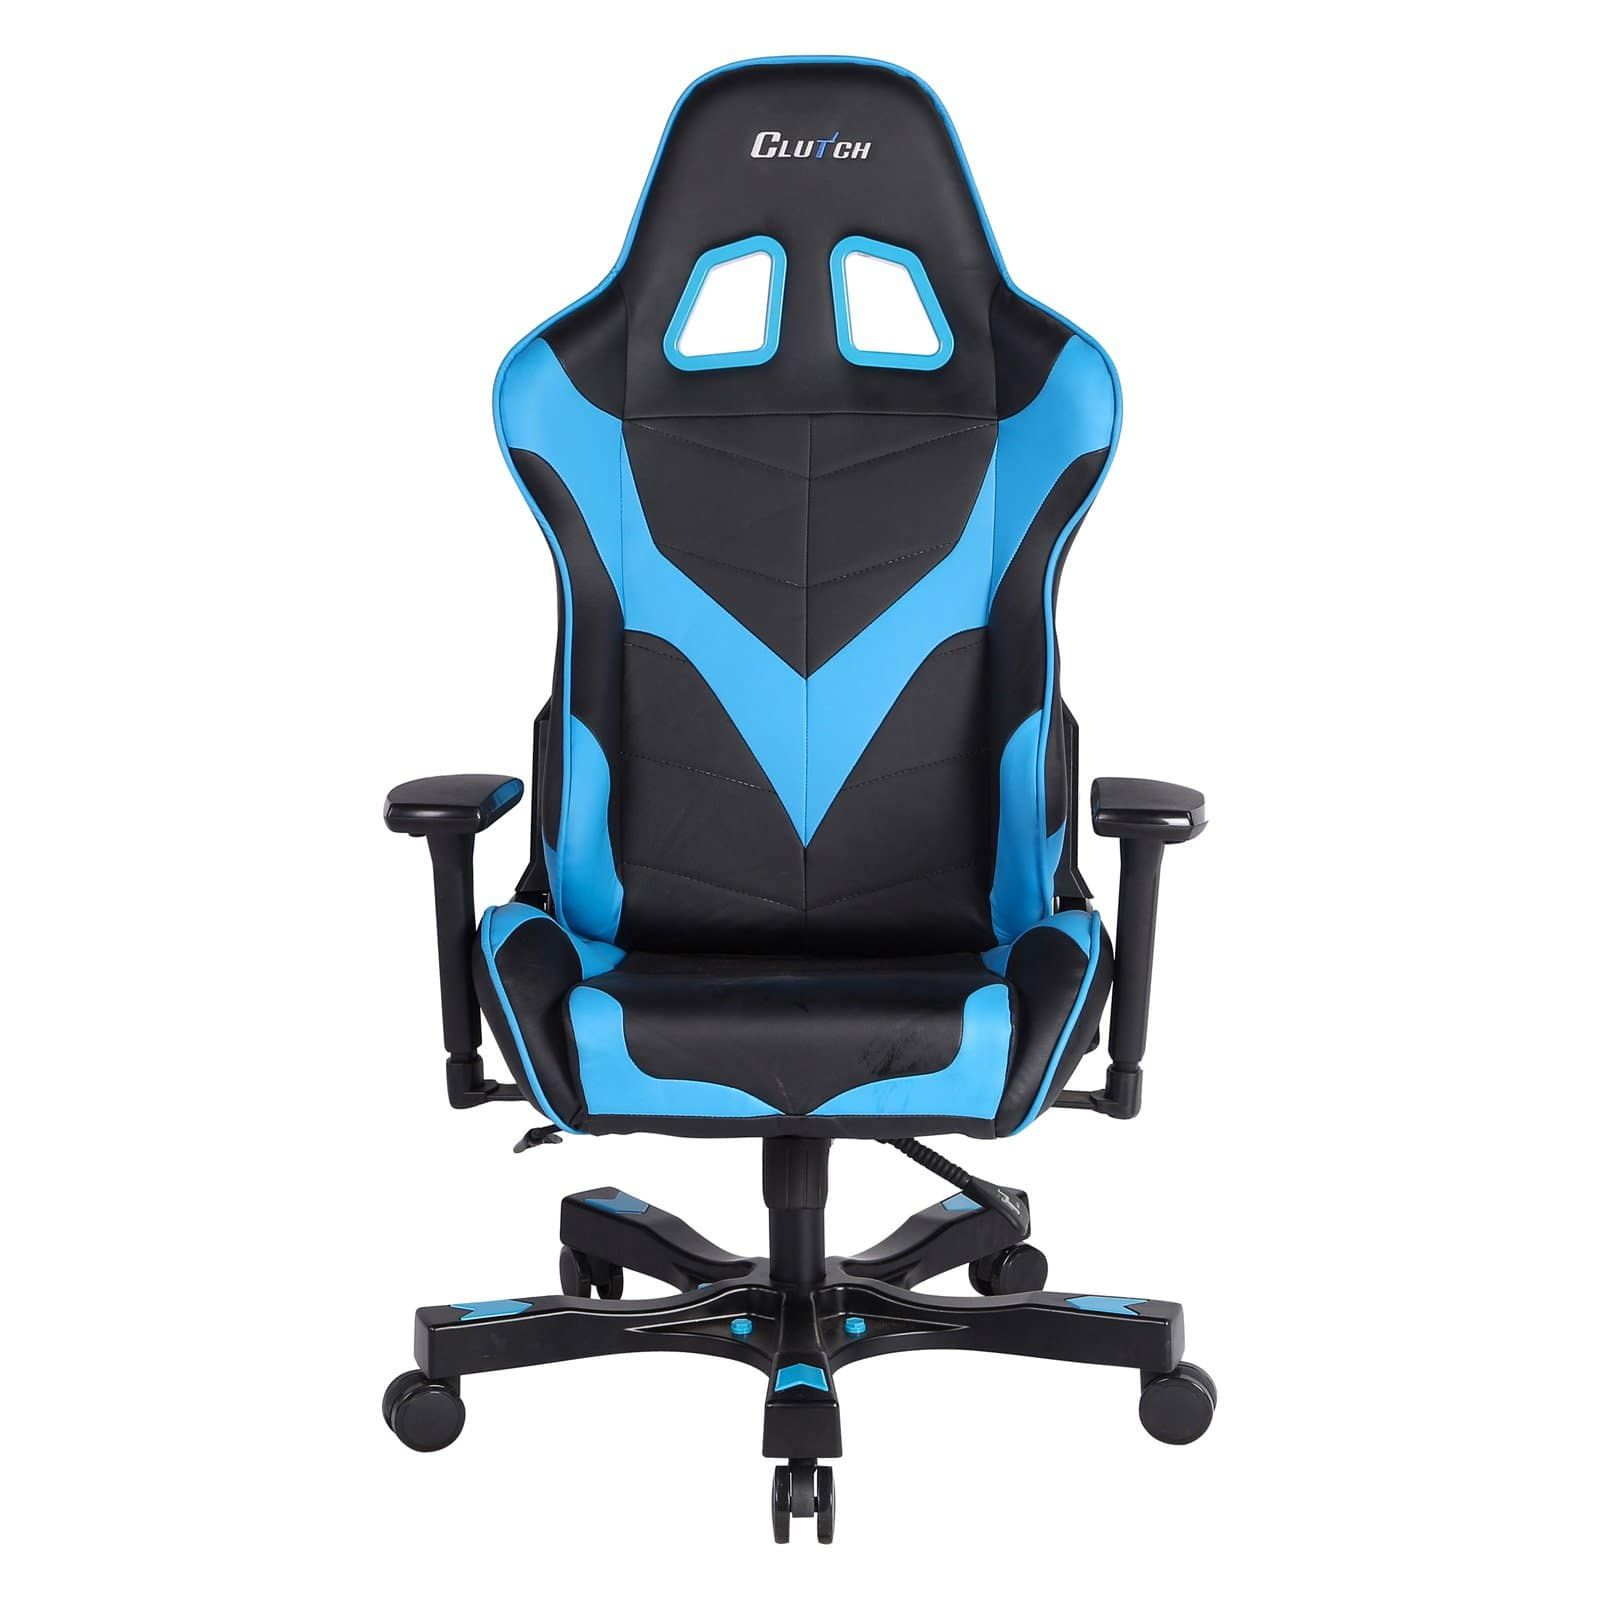 Gaming Chairs Video Rockers Hayneedle In 2020 Gaming Chair Computer Chair Lumbar Support Cushion